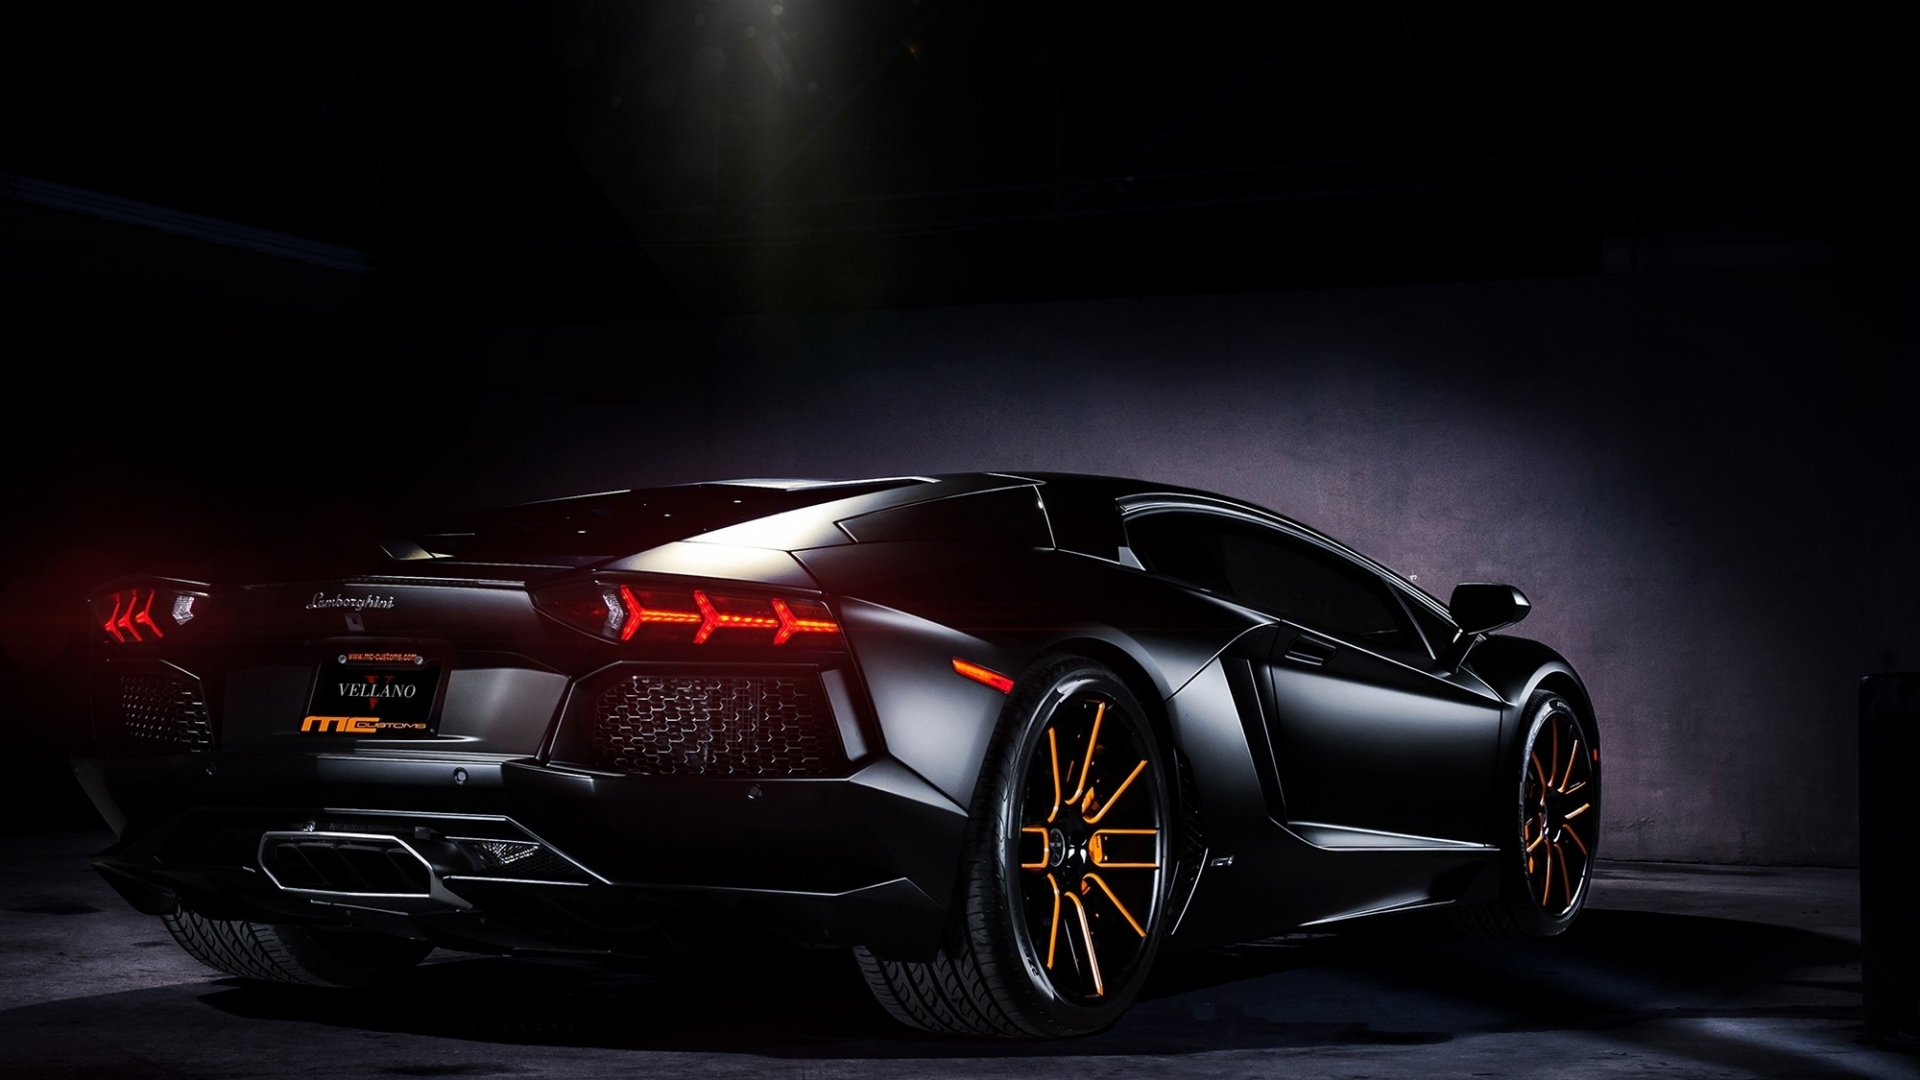 Amazing car with Black background